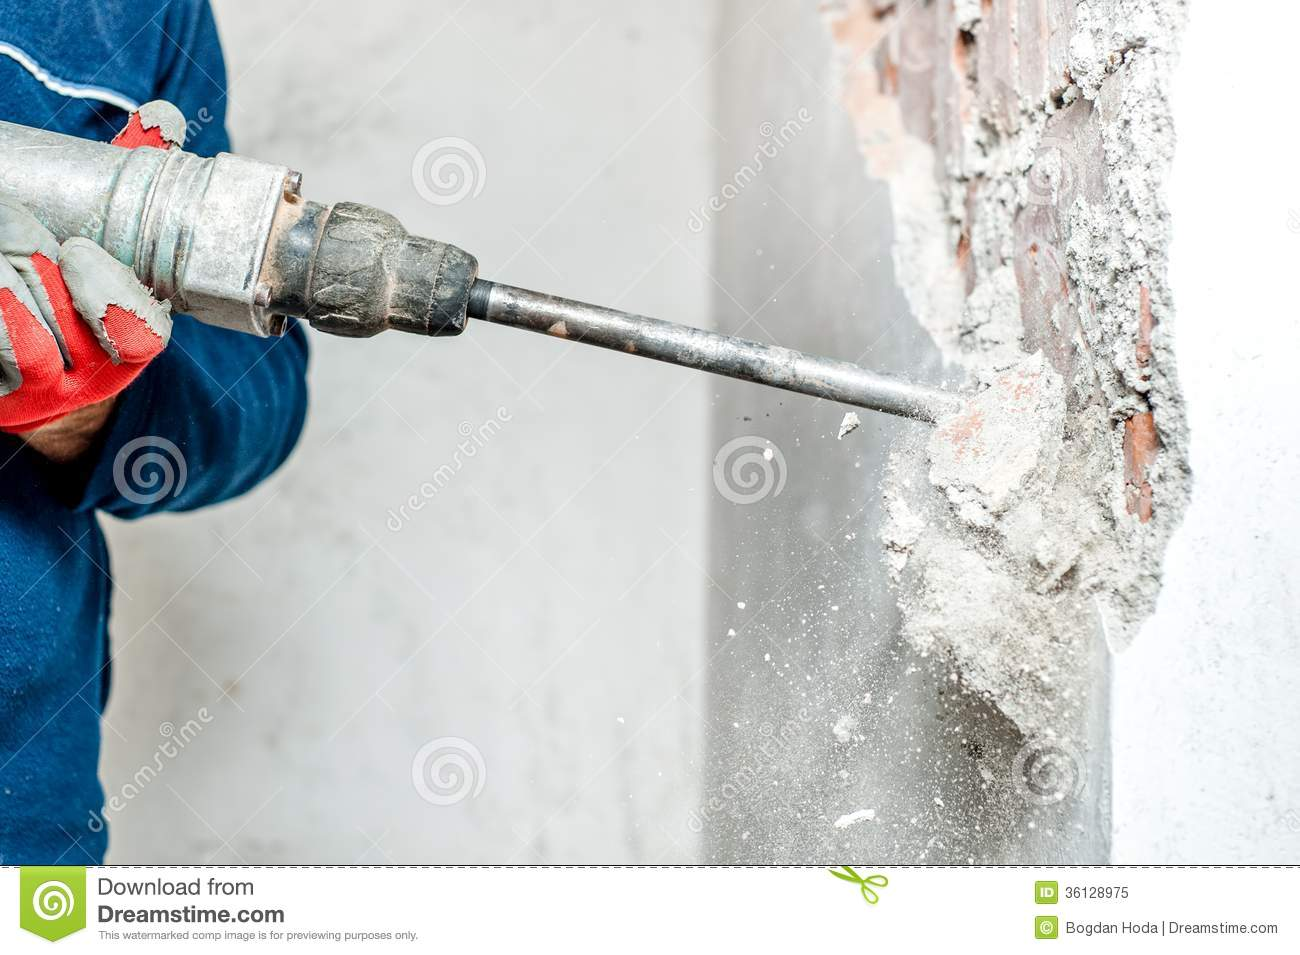 Man Using A Jackhammer To Drill Into Wall Royalty Free